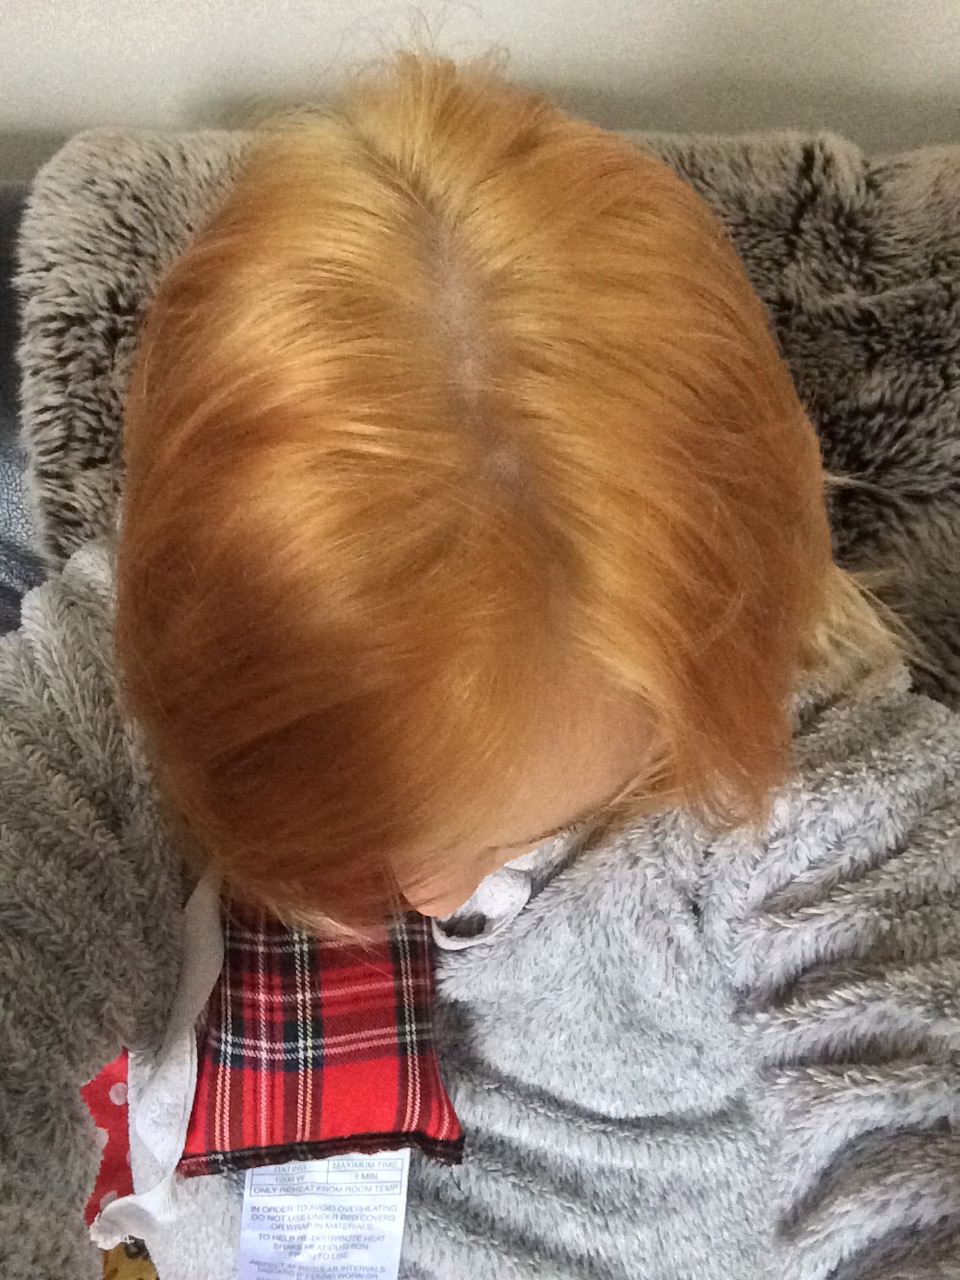 Ginger brassy hair after bleaching